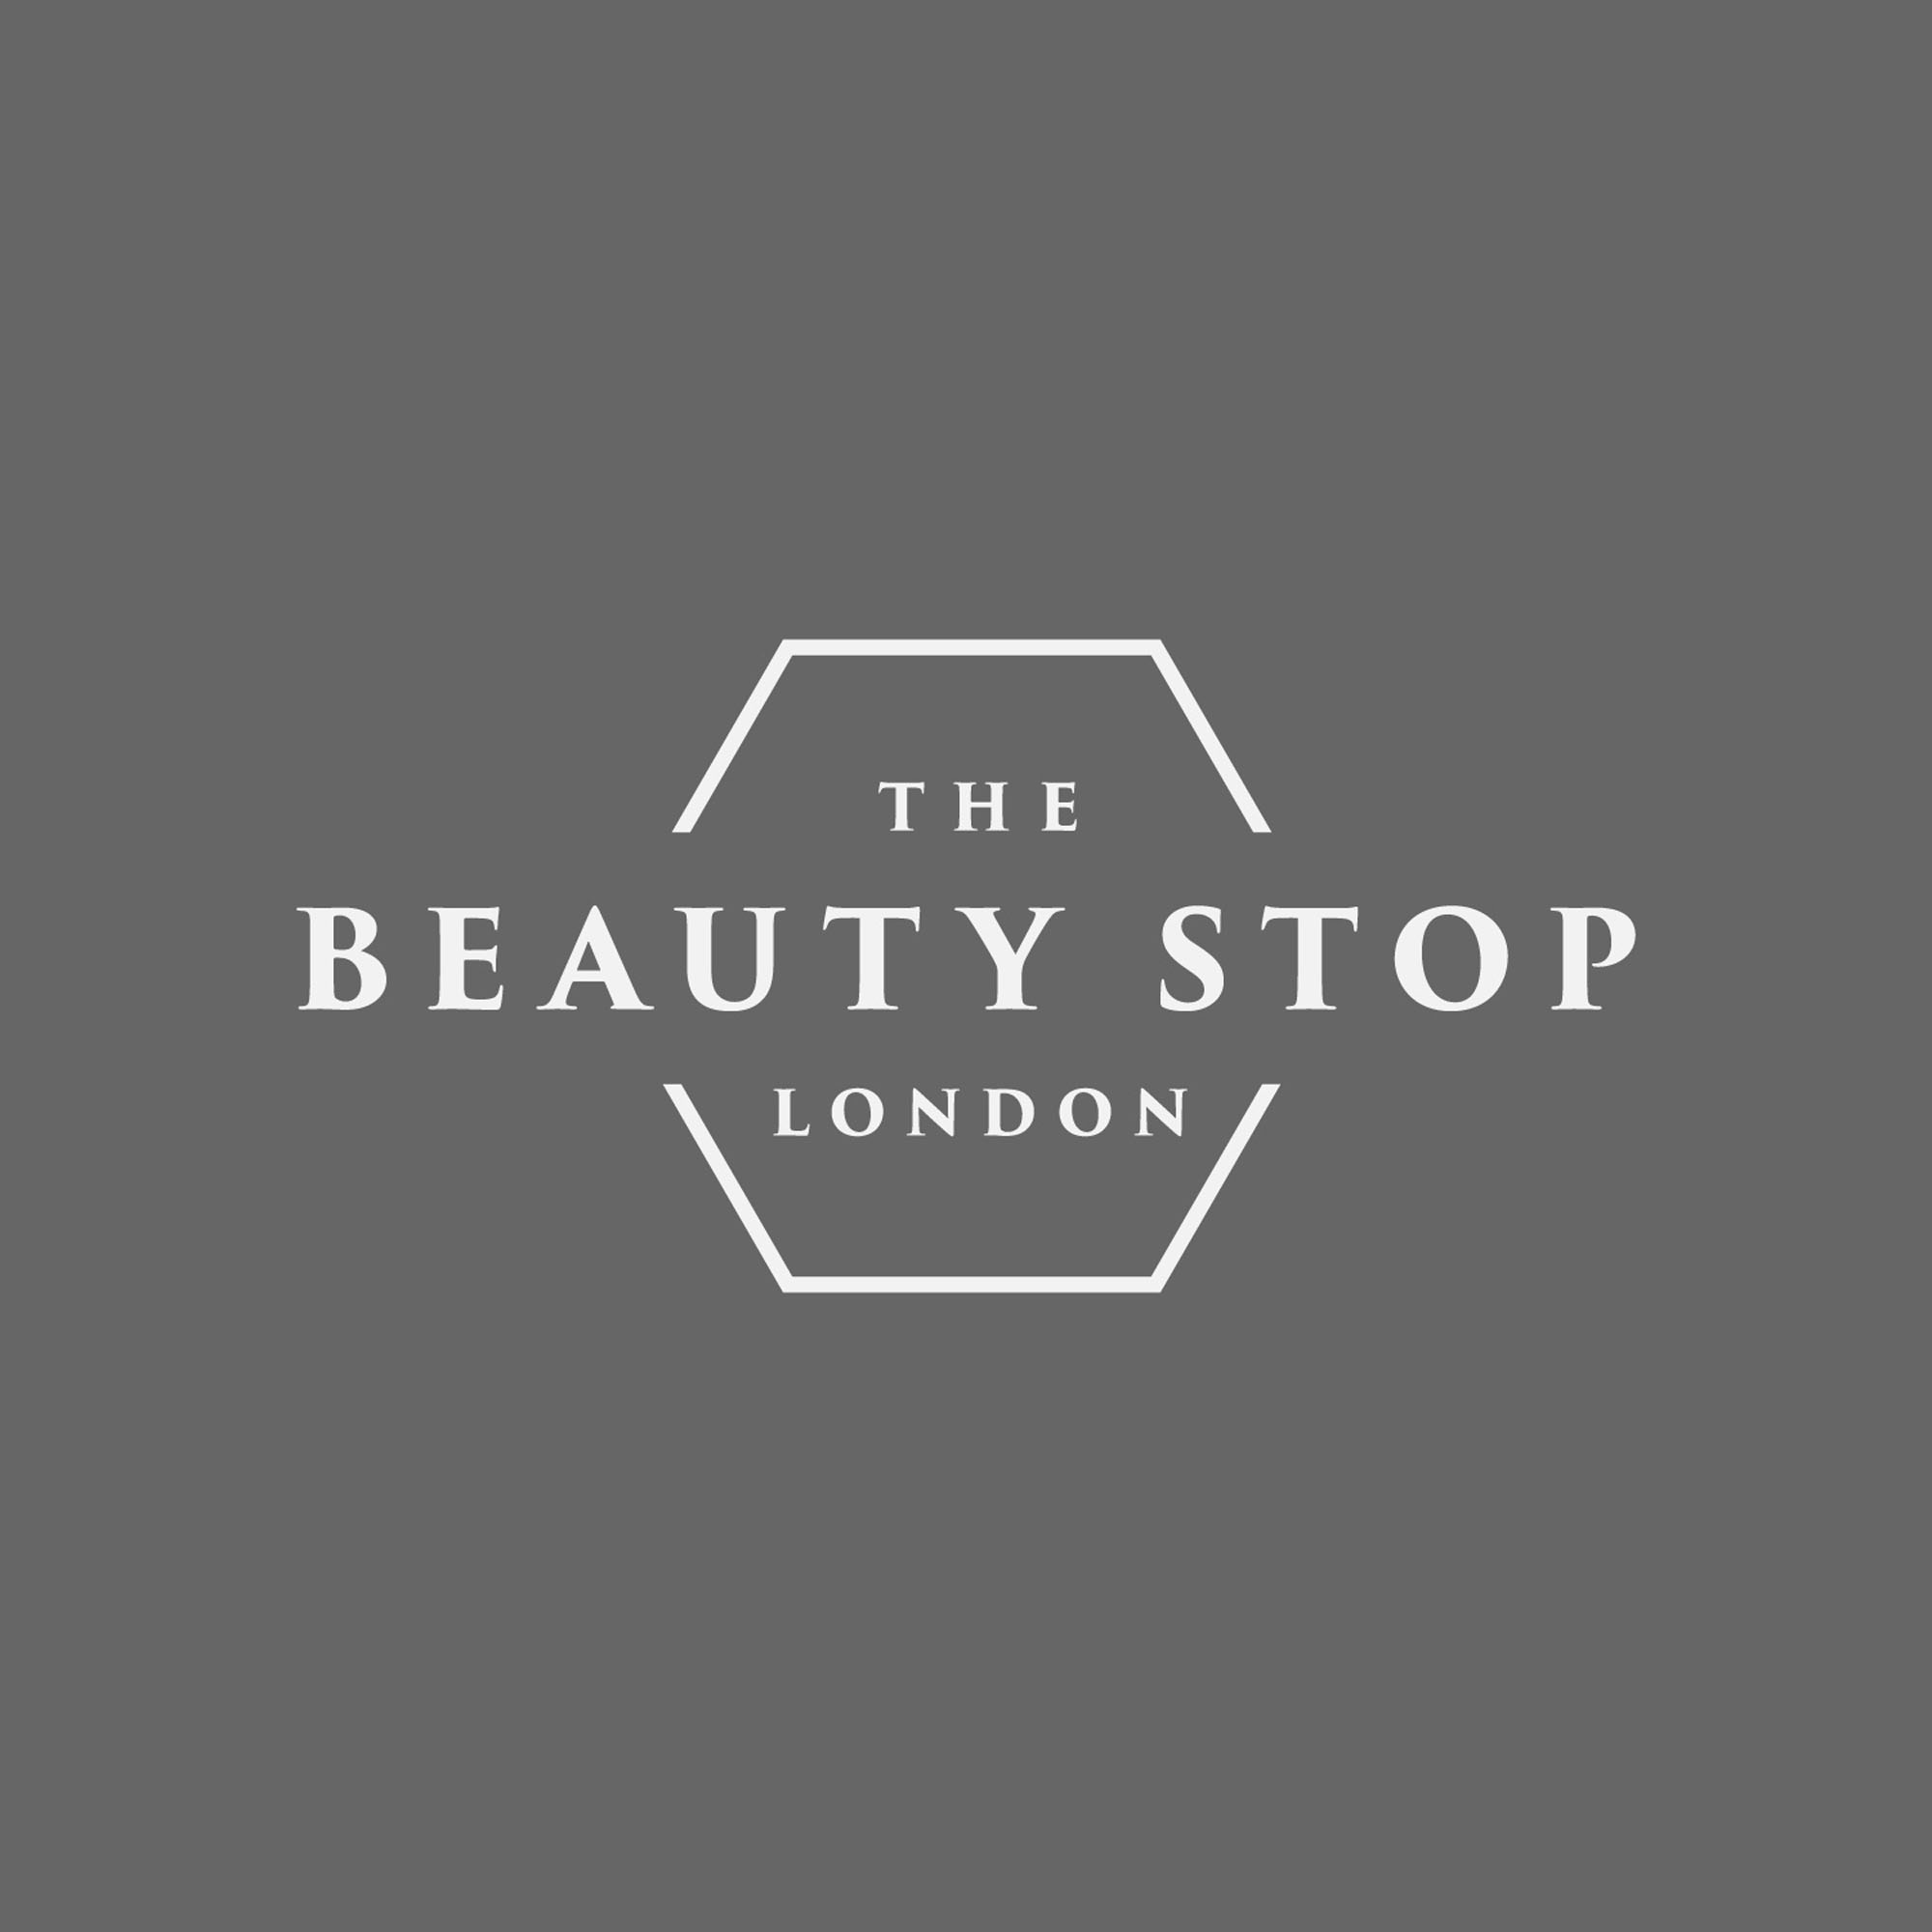 logo-designer-london-uk